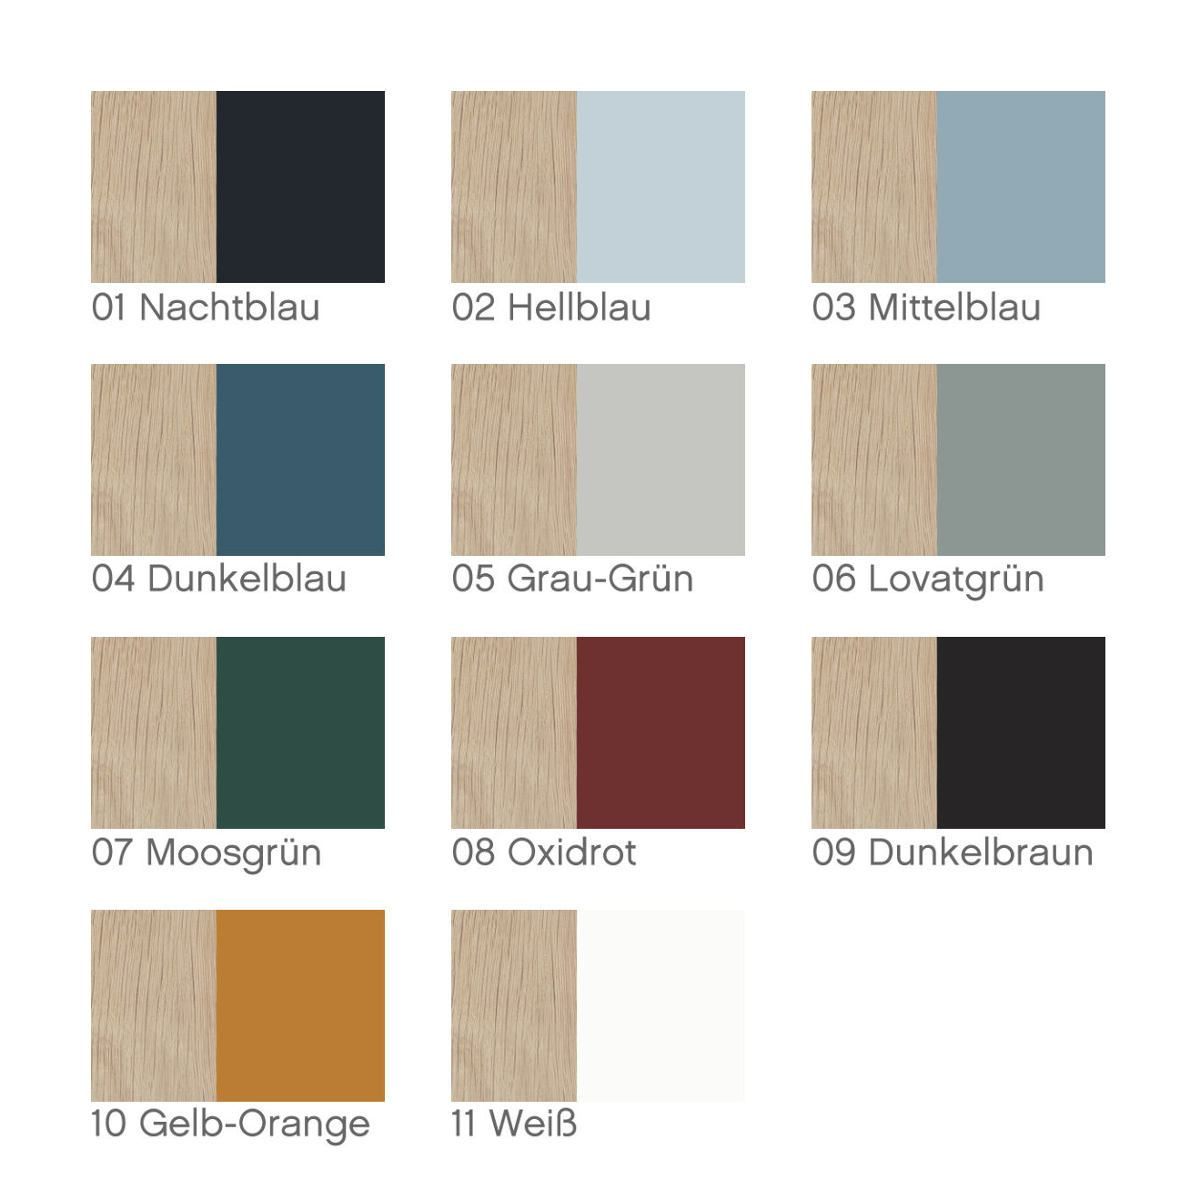 Standard colors for the back walls